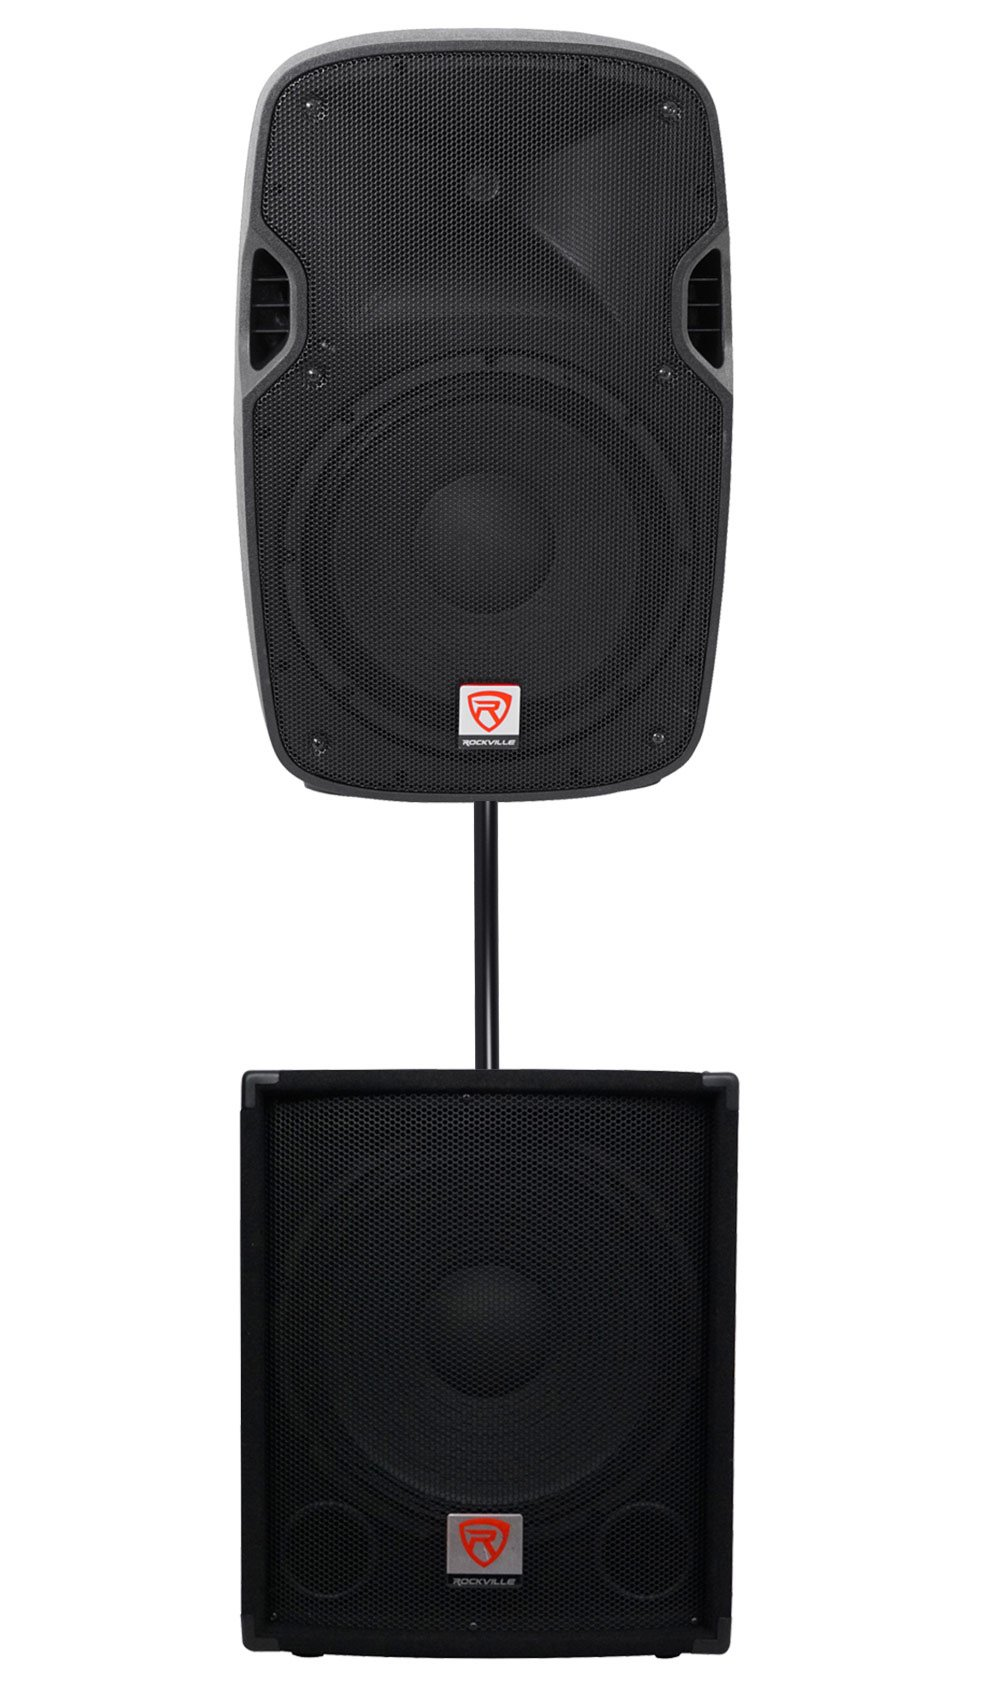 Package: Rockville SPGN128 12'' Passive 1200 Watt Peak 8-Ohm Lightweight DJ/PA Speaker + Rockville SBG1154 15'' 700 Watt Passive Pro DJ Subwoofer + Rockville RSP36 36'' Subwoofer Mounting Pole by Rockville